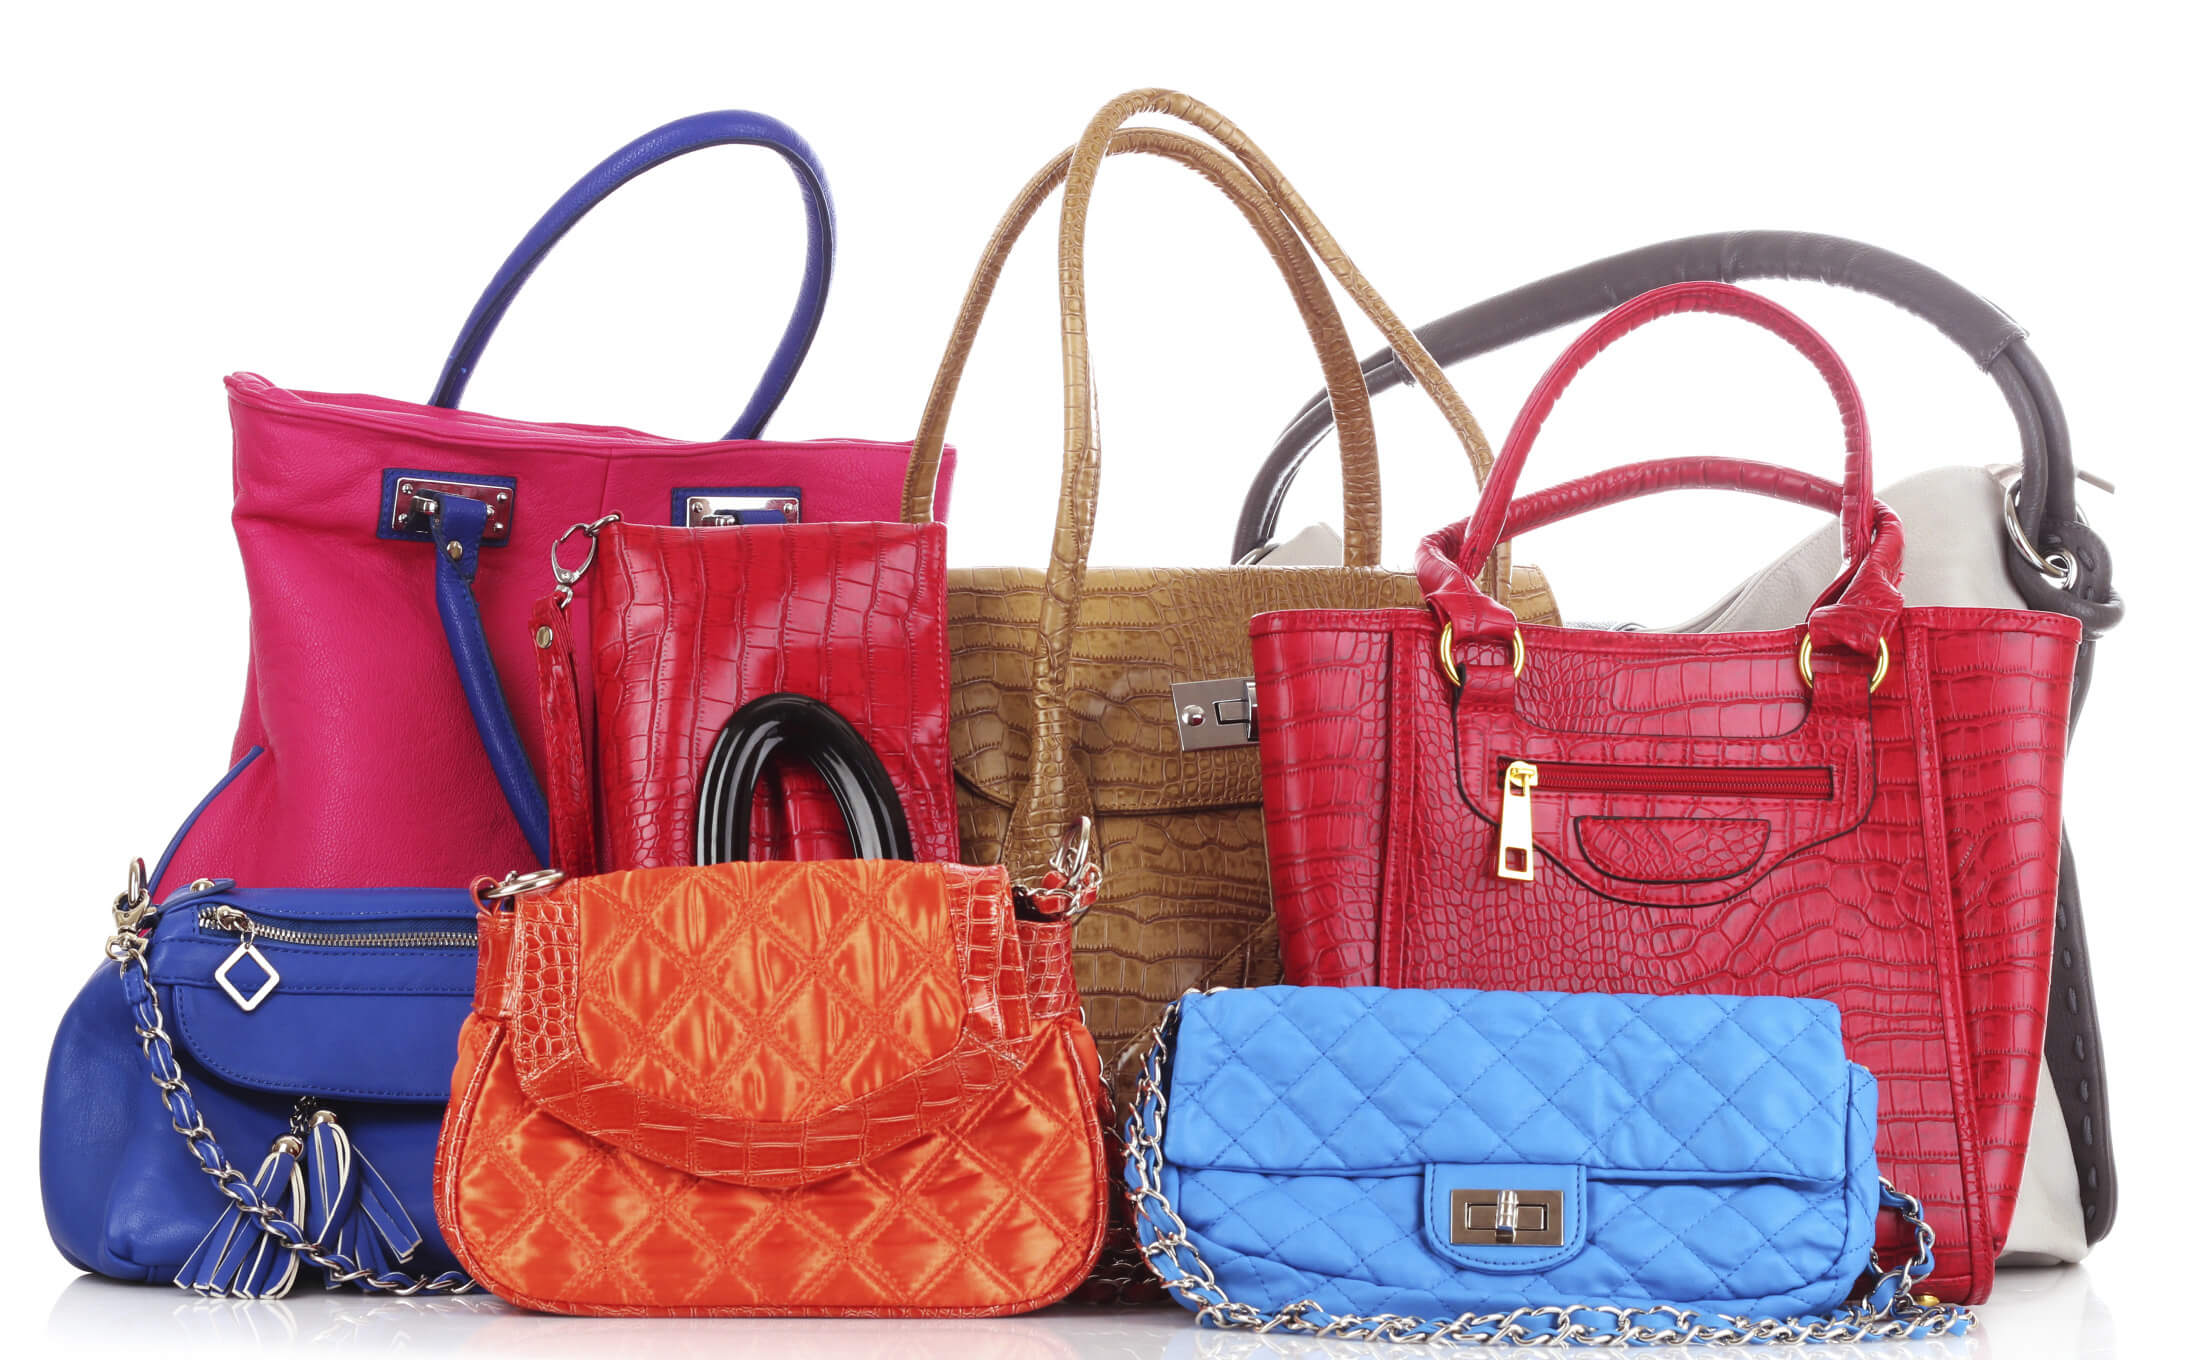 Shop for handbags and purses at Target. Find bags for every occasion including clutches, beach, totes, crossbody and weekender. Free shipping on orders $35+.